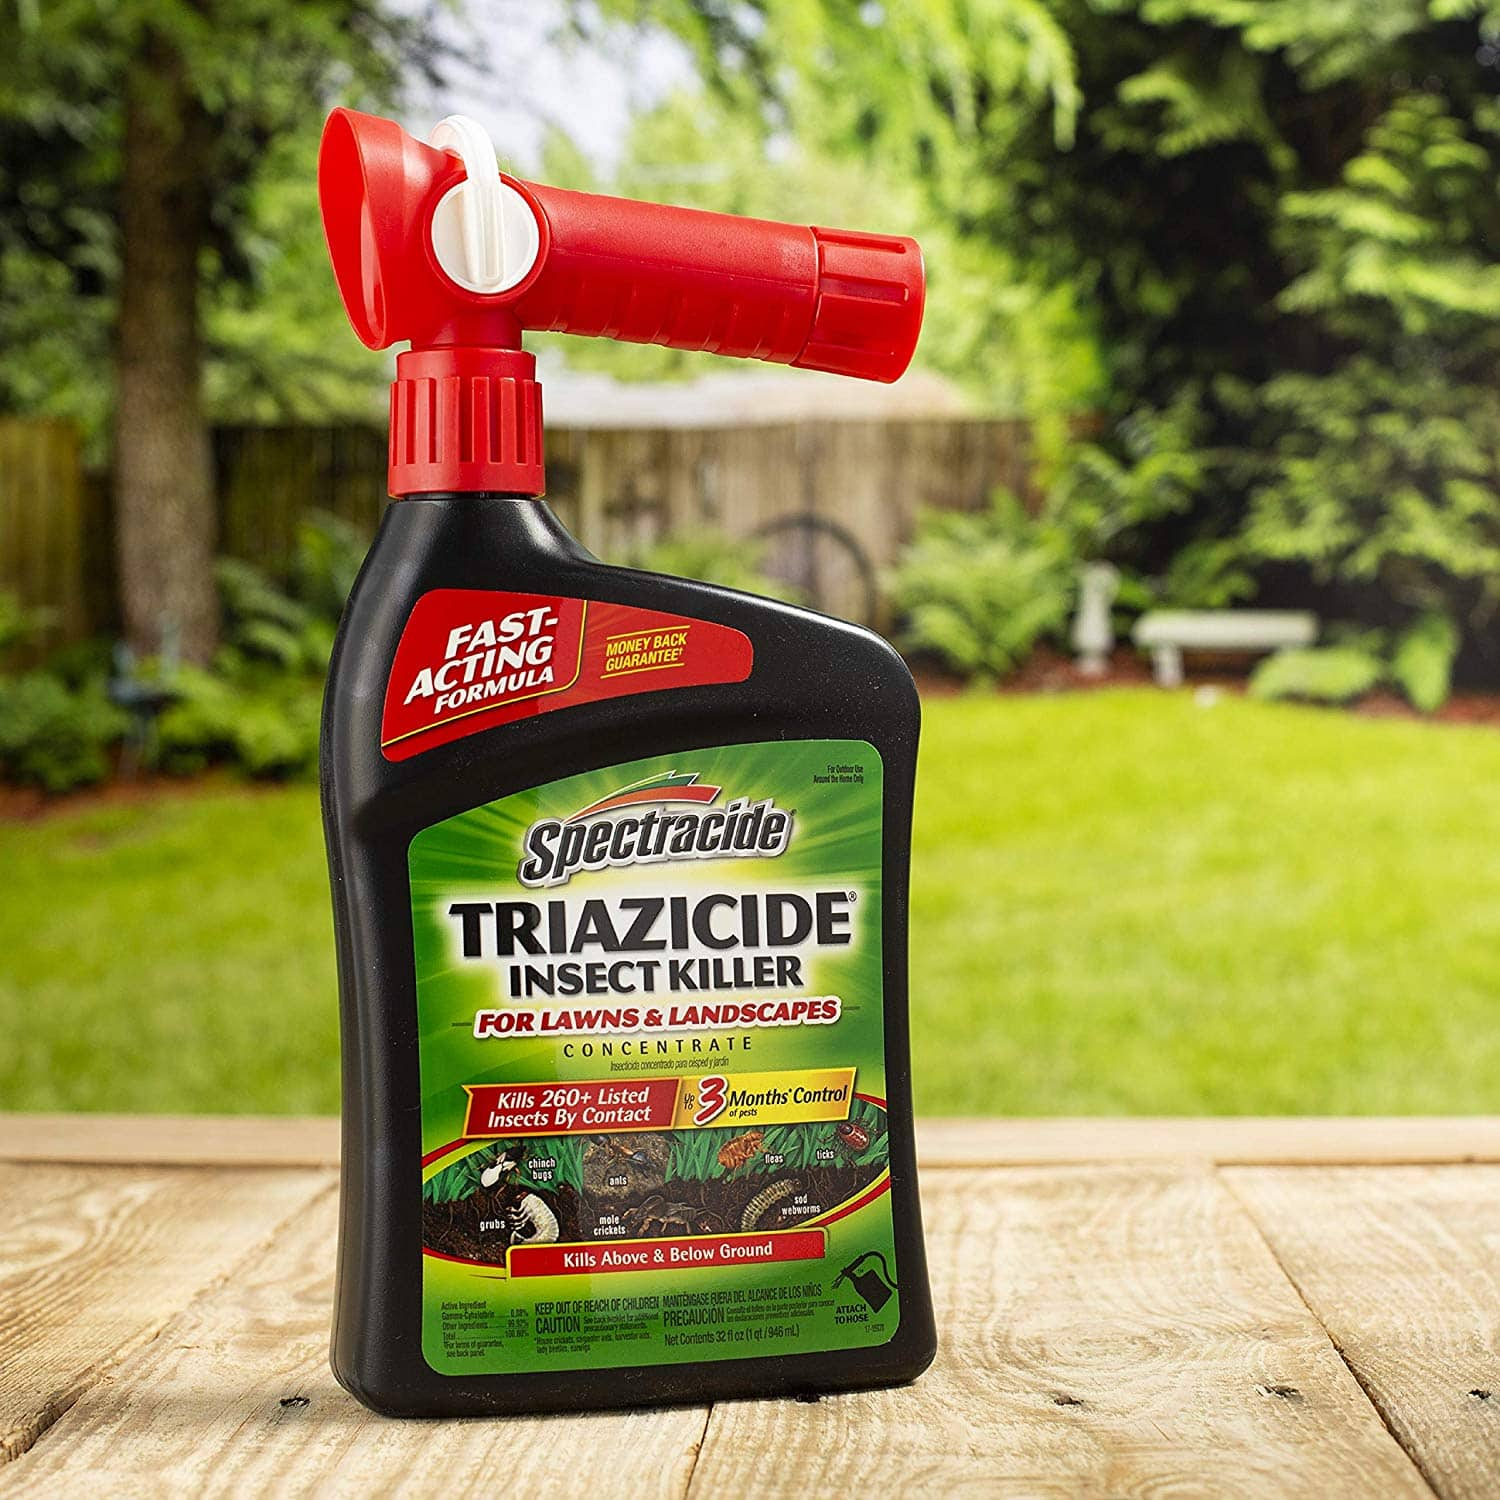 Spectracide Triazicide Insect Killer For Lawns & Landscapes Concentrate, Ready-to-Spray, 32-Oz *via Amazon - It's an Add-on item *Same price at Walmart and Home Depot